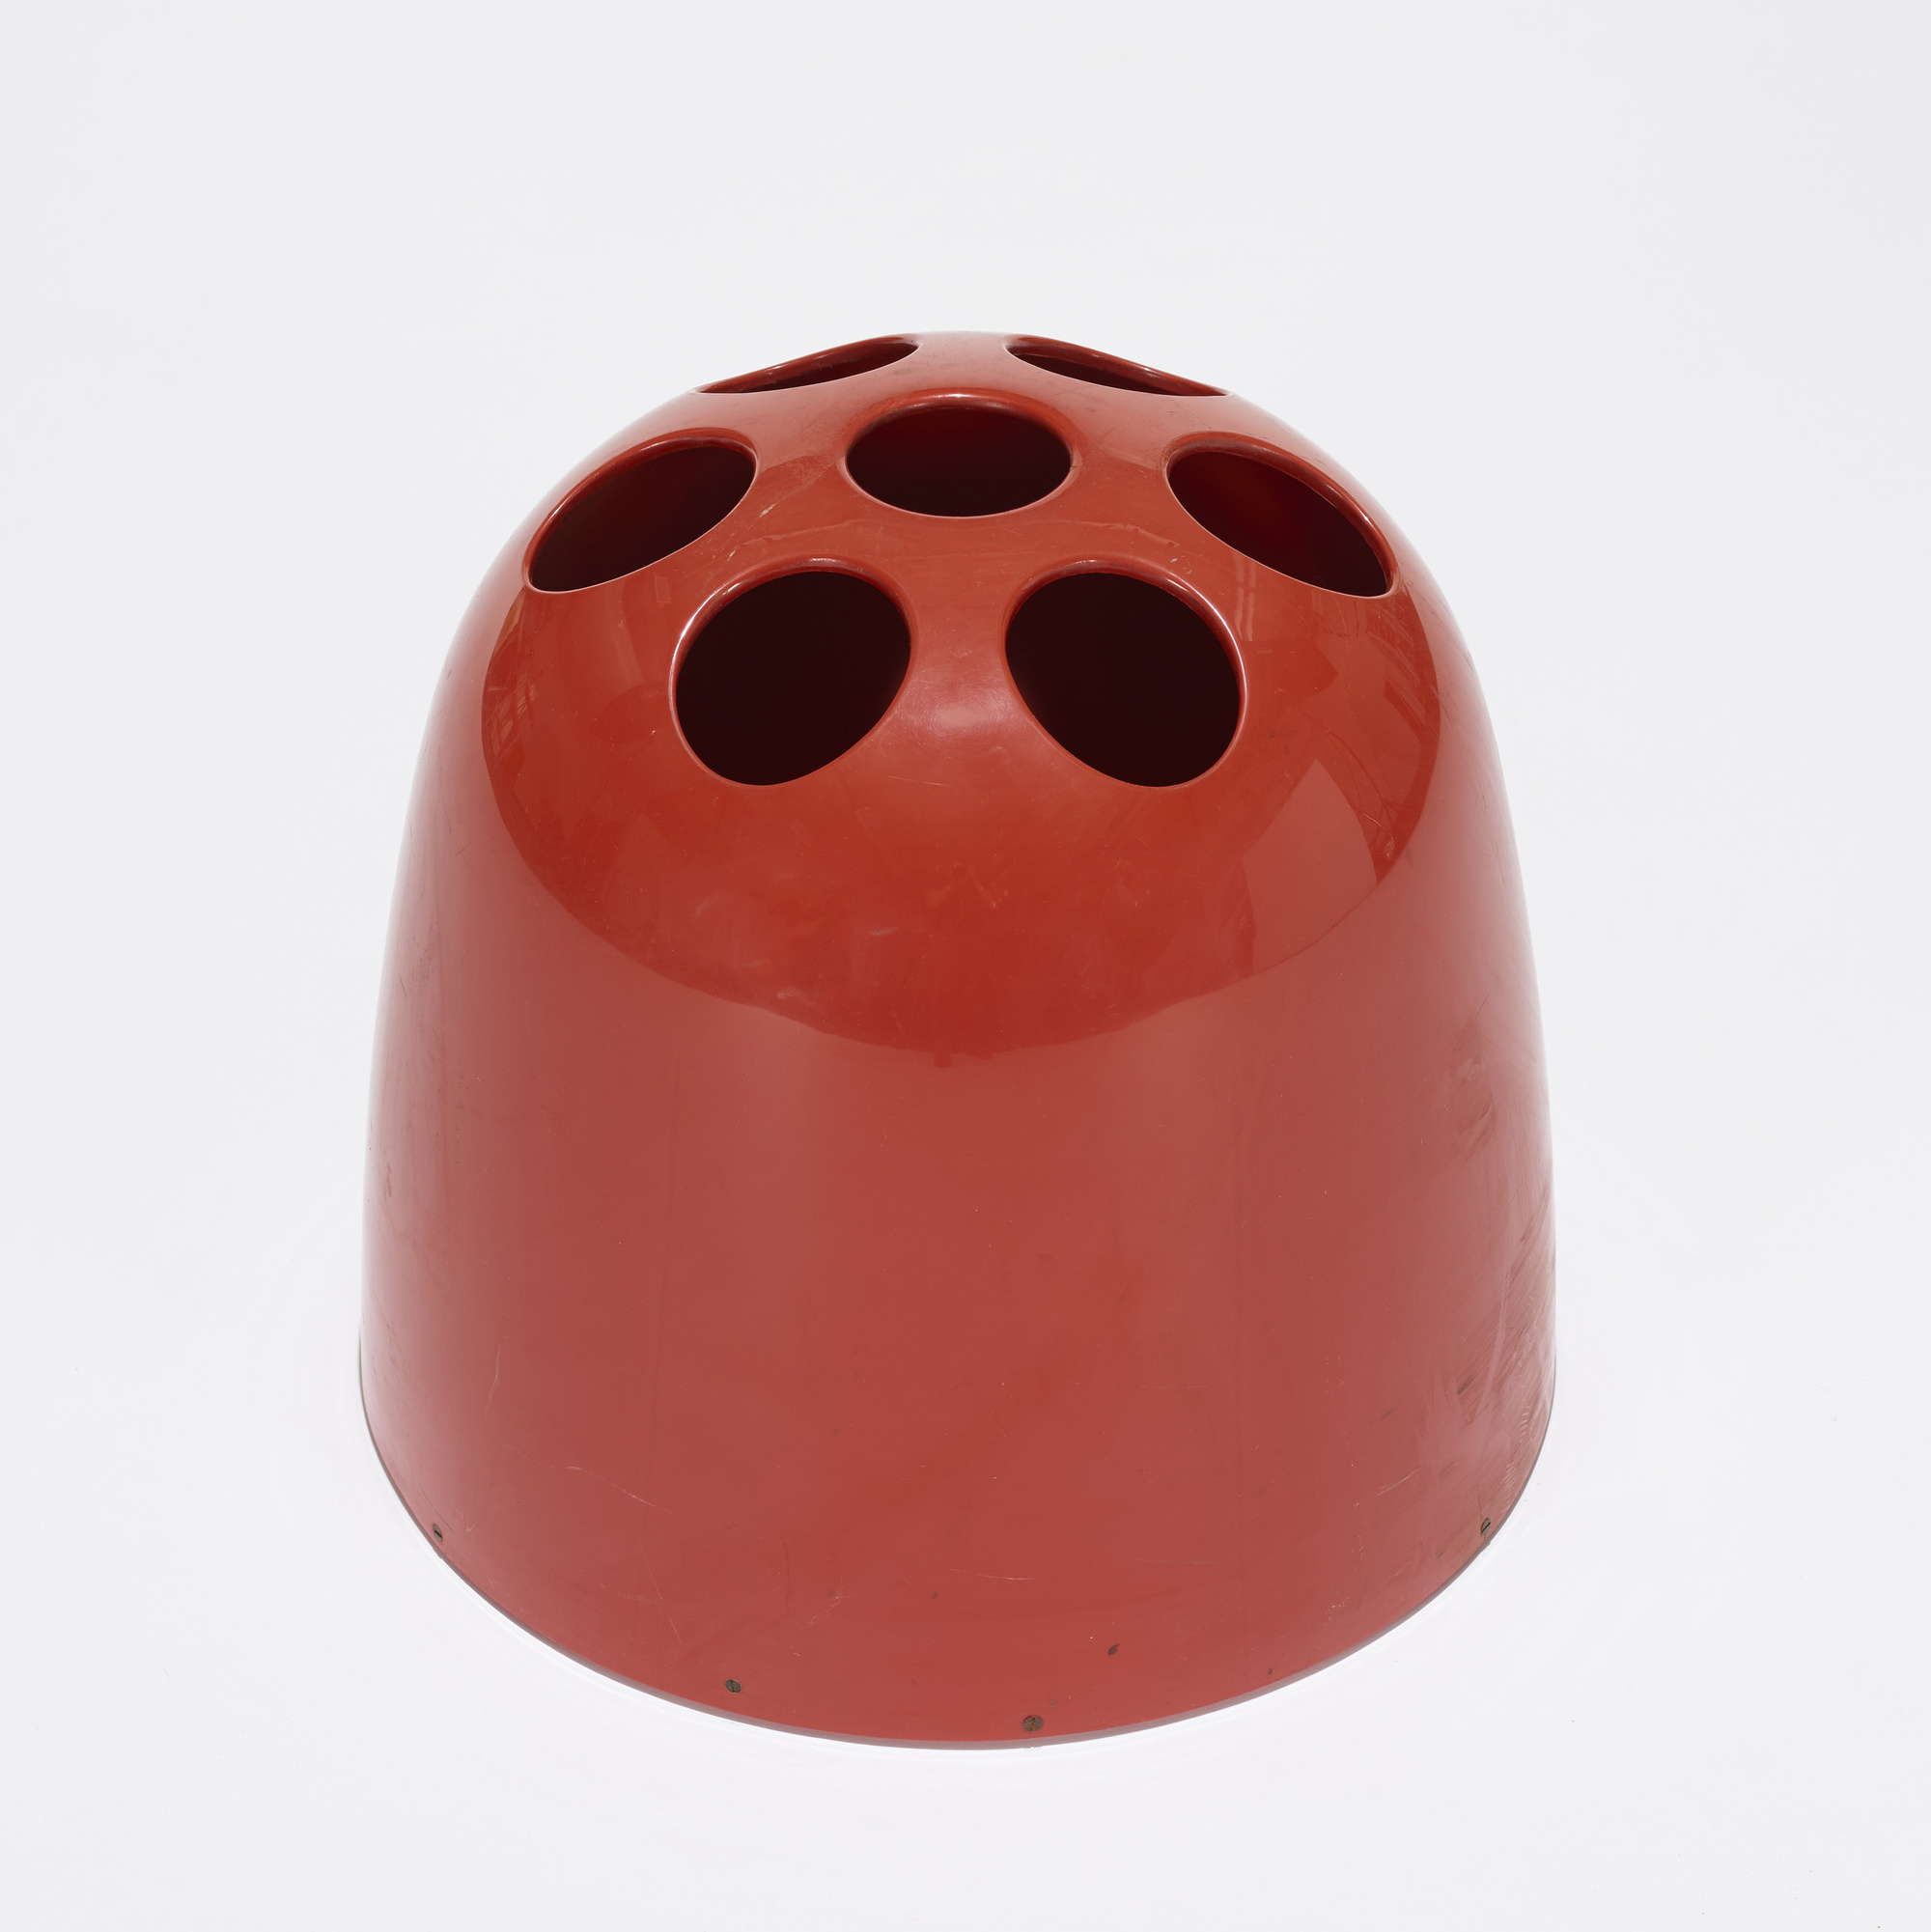 404: Emma Gismondi Schweinberger / Dedalo umbrella stand (2 of 3)